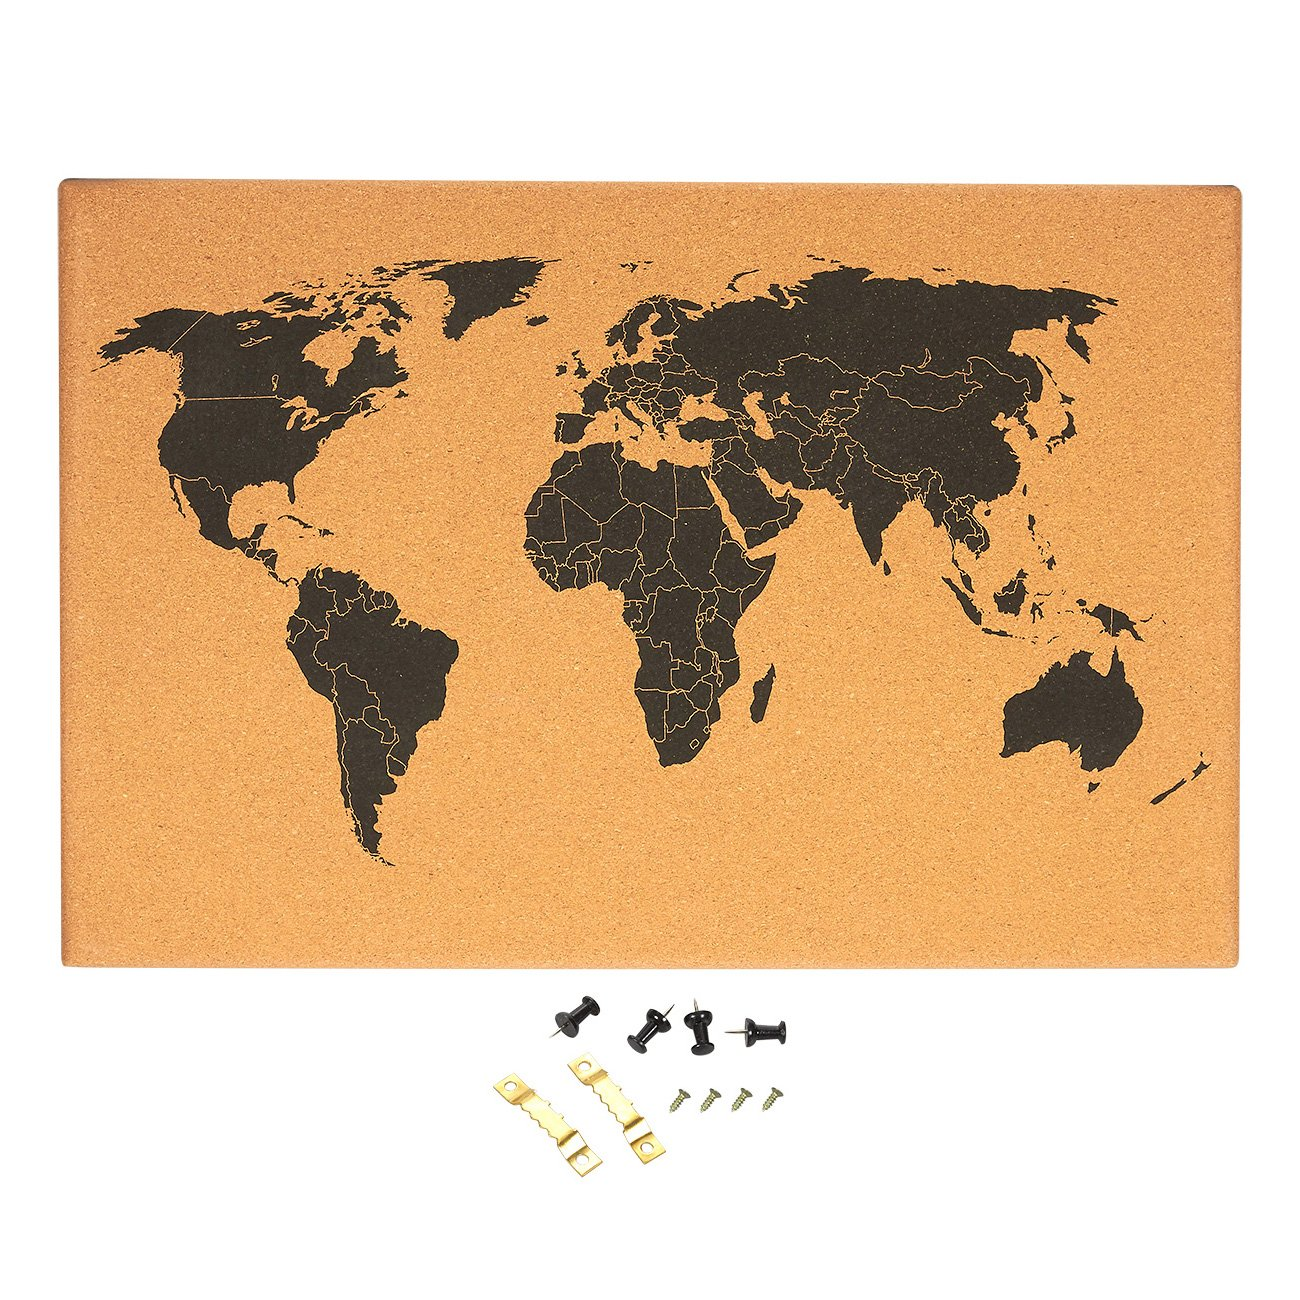 Cork Board Map of The World - Wall Mount Bulletin Board with Detailed World Map, Black Printed Frameless World Travel Map with Pins, 23.5 x 0.75 x 15.75 inches Juvale